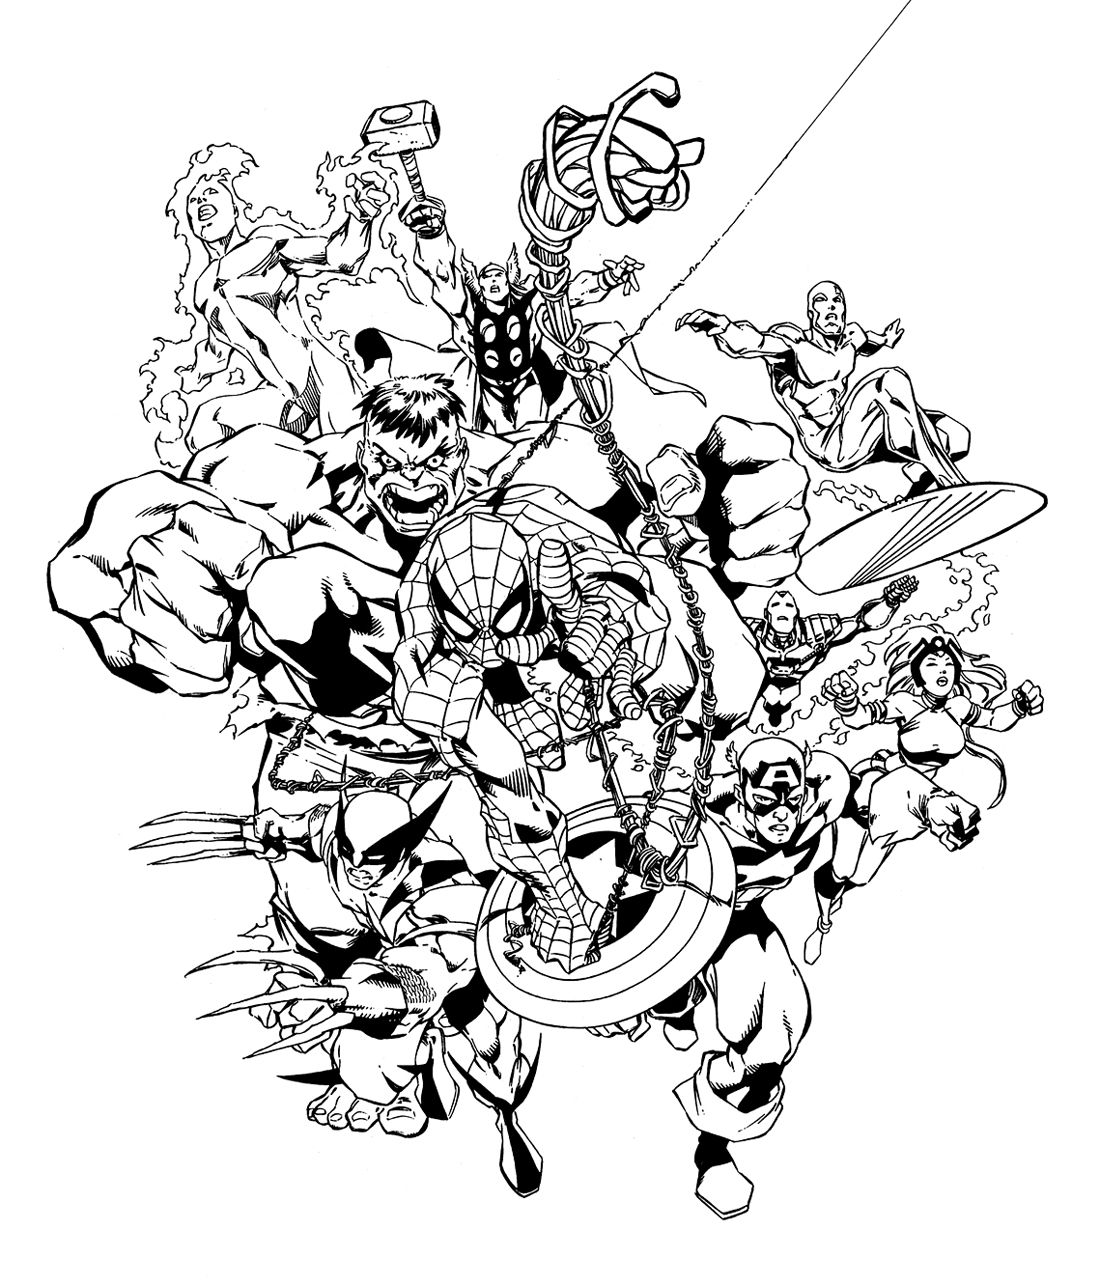 action hero coloring pages all super heroes in super hero squad coloring page netart coloring hero action pages